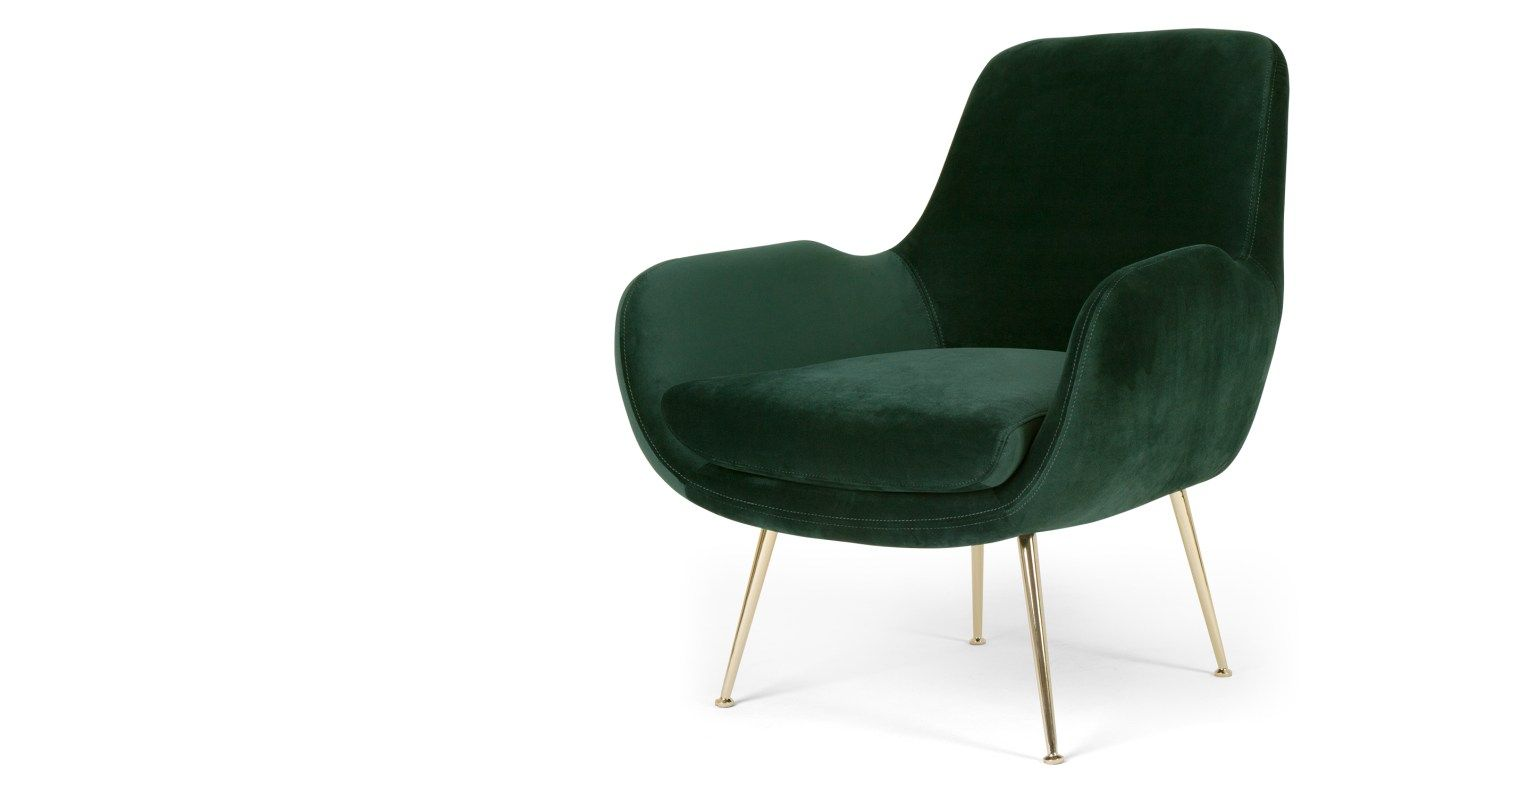 Moby Fauteuil D Appoint Velours Vert Sapin In 2020 Green Lounge Accent Arm Chairs Armchair